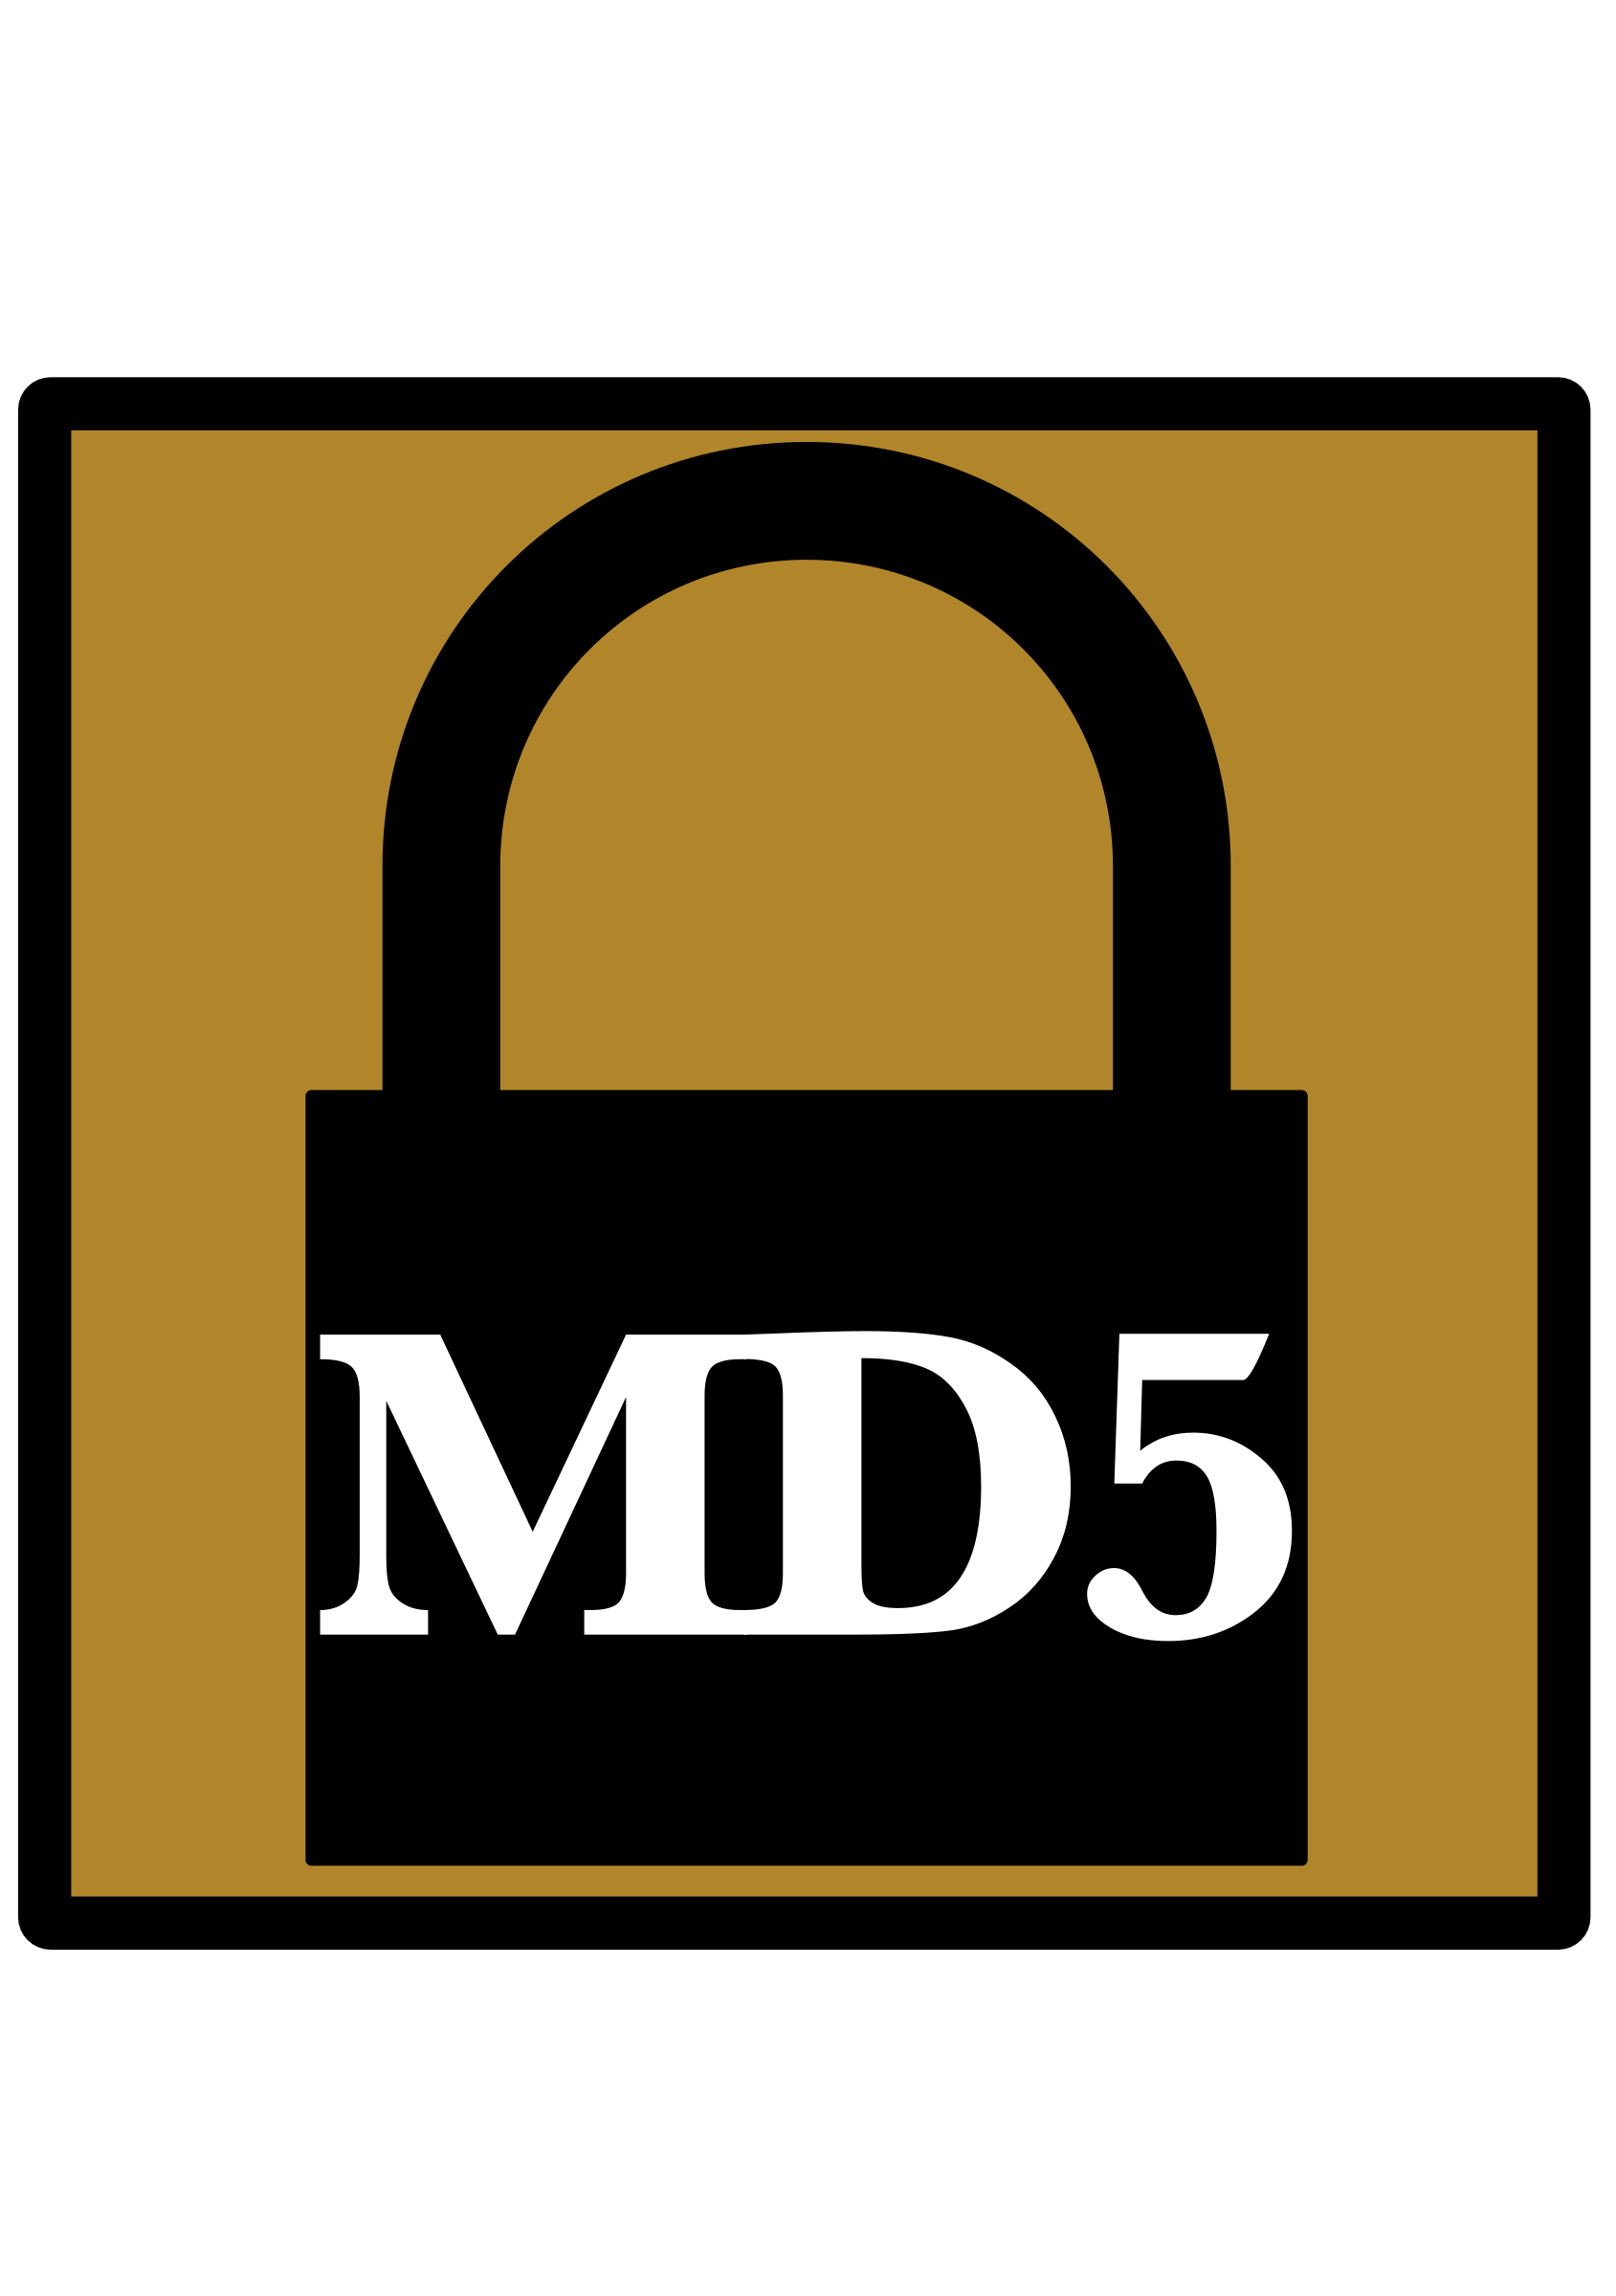 Padlock Silhouette Icon [Umber] [MD5] by Vookimedlo